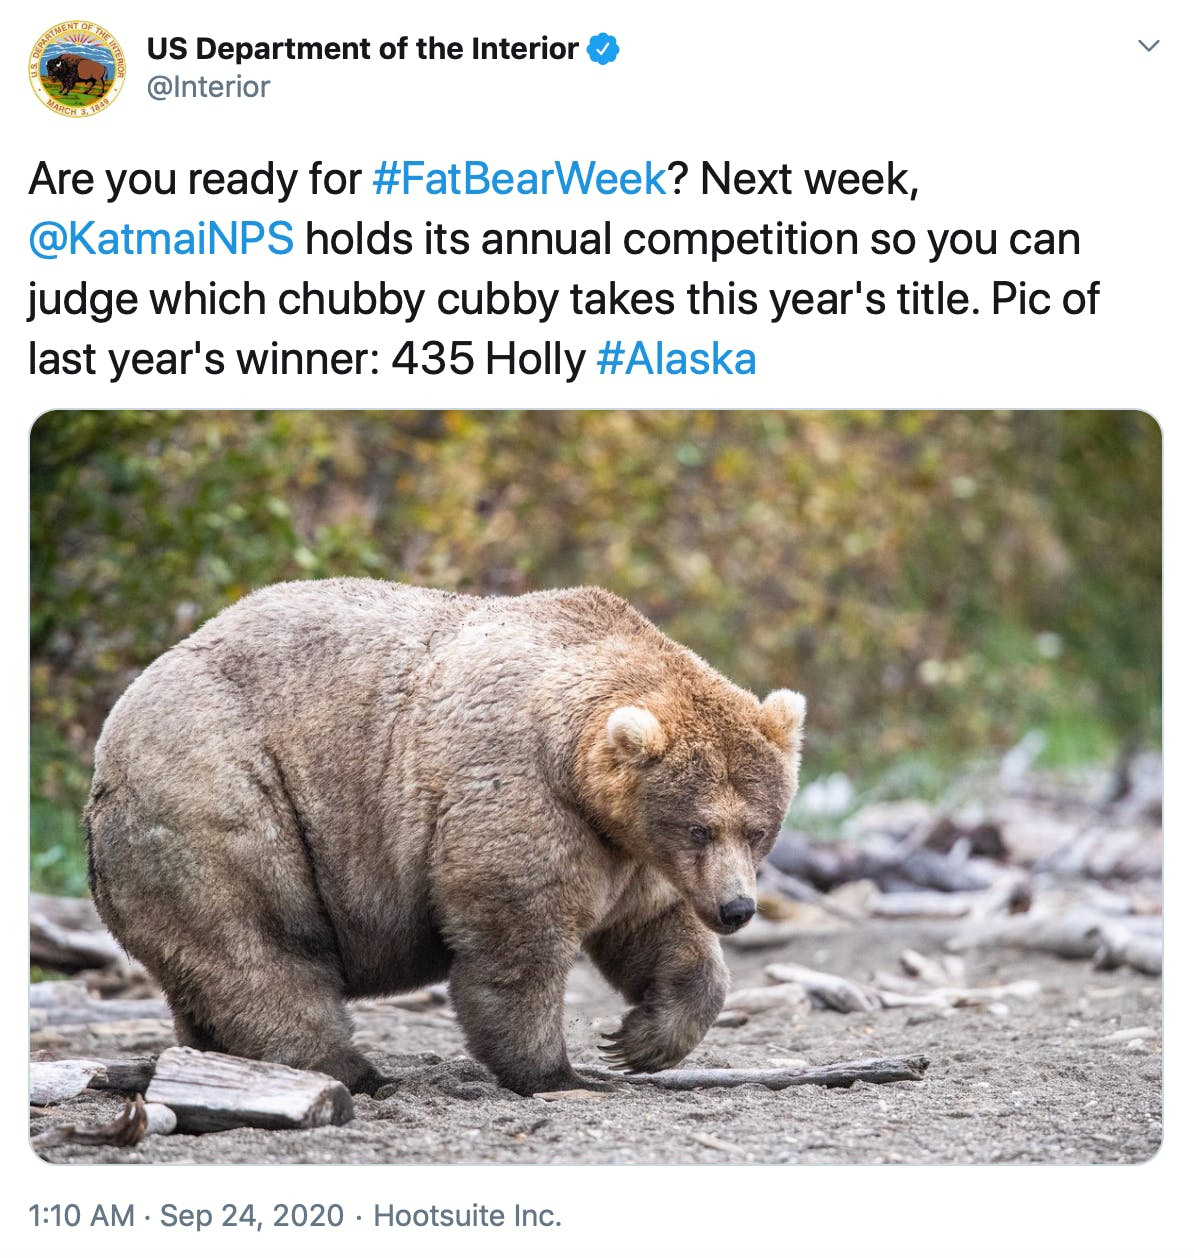 """""""Are you ready for #FatBearWeek? Next week,  @KatmaiNPS  holds its annual competition so you can judge which chubby cubby takes this year's title. Pic of last year's winner: 435 Holly #Alaska"""" photograph of a very fat brown bear"""